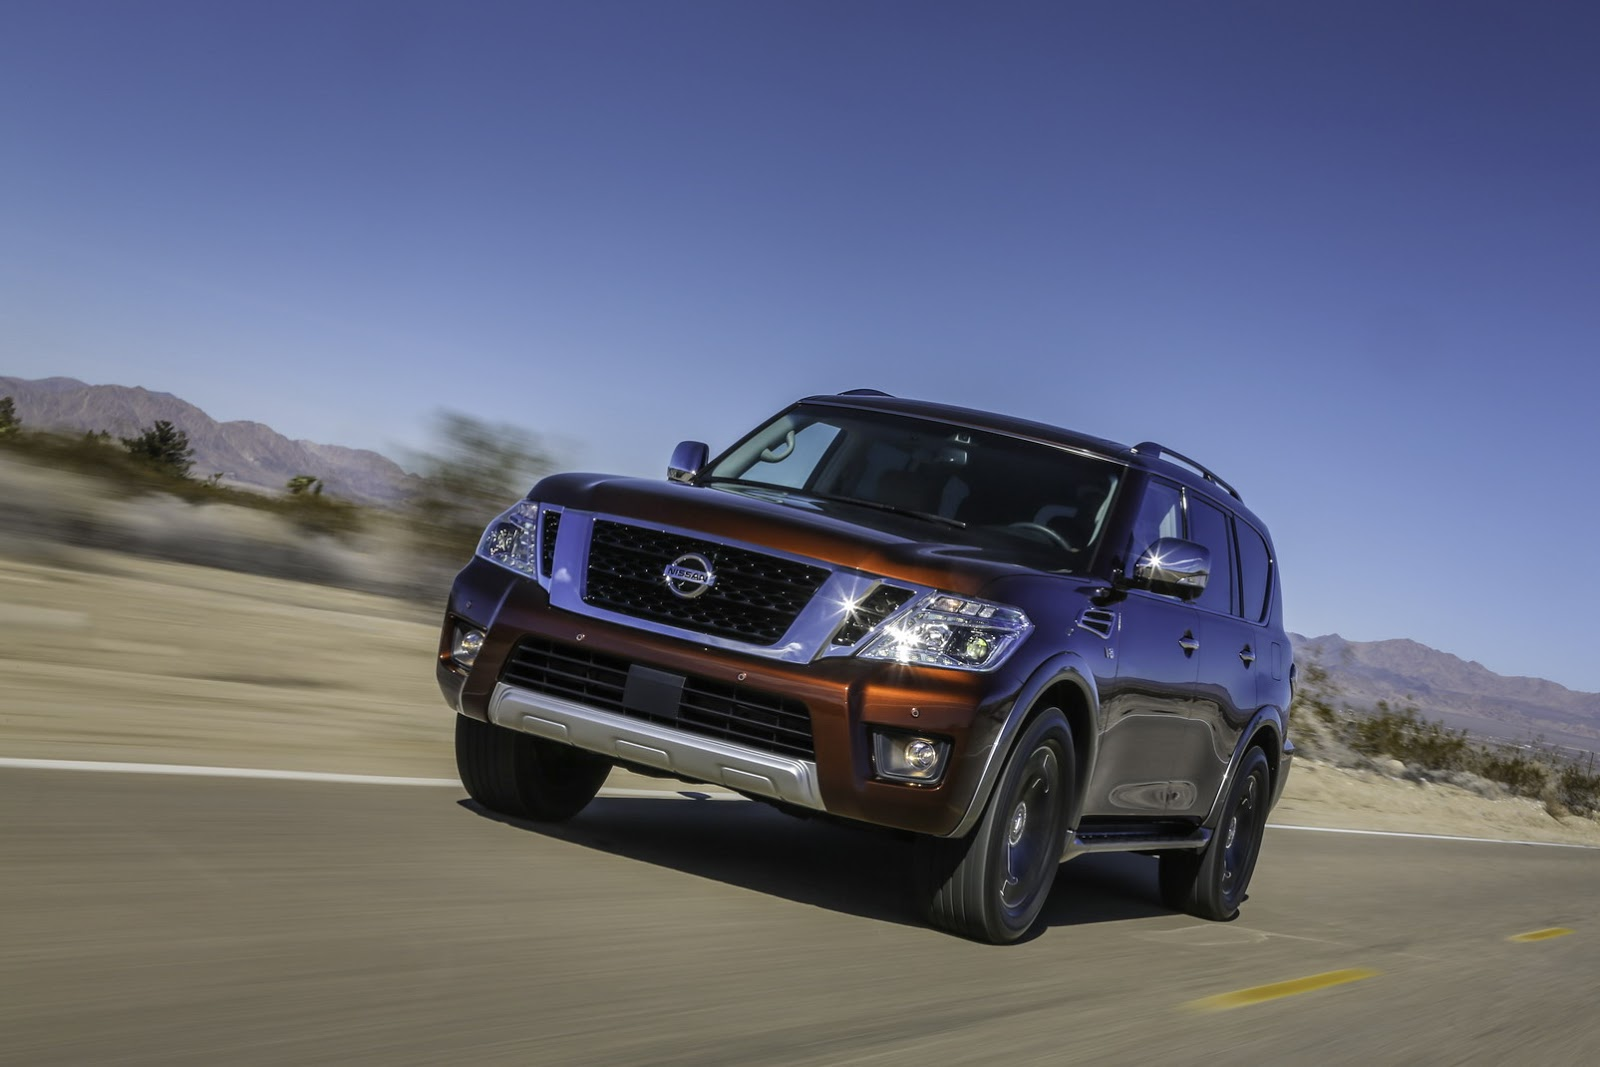 2017 nissan armada is north americas patrol or the infiniti 2017 nissan armada is north americas patrol or the infiniti qx80s less glitzy twin vanachro Choice Image